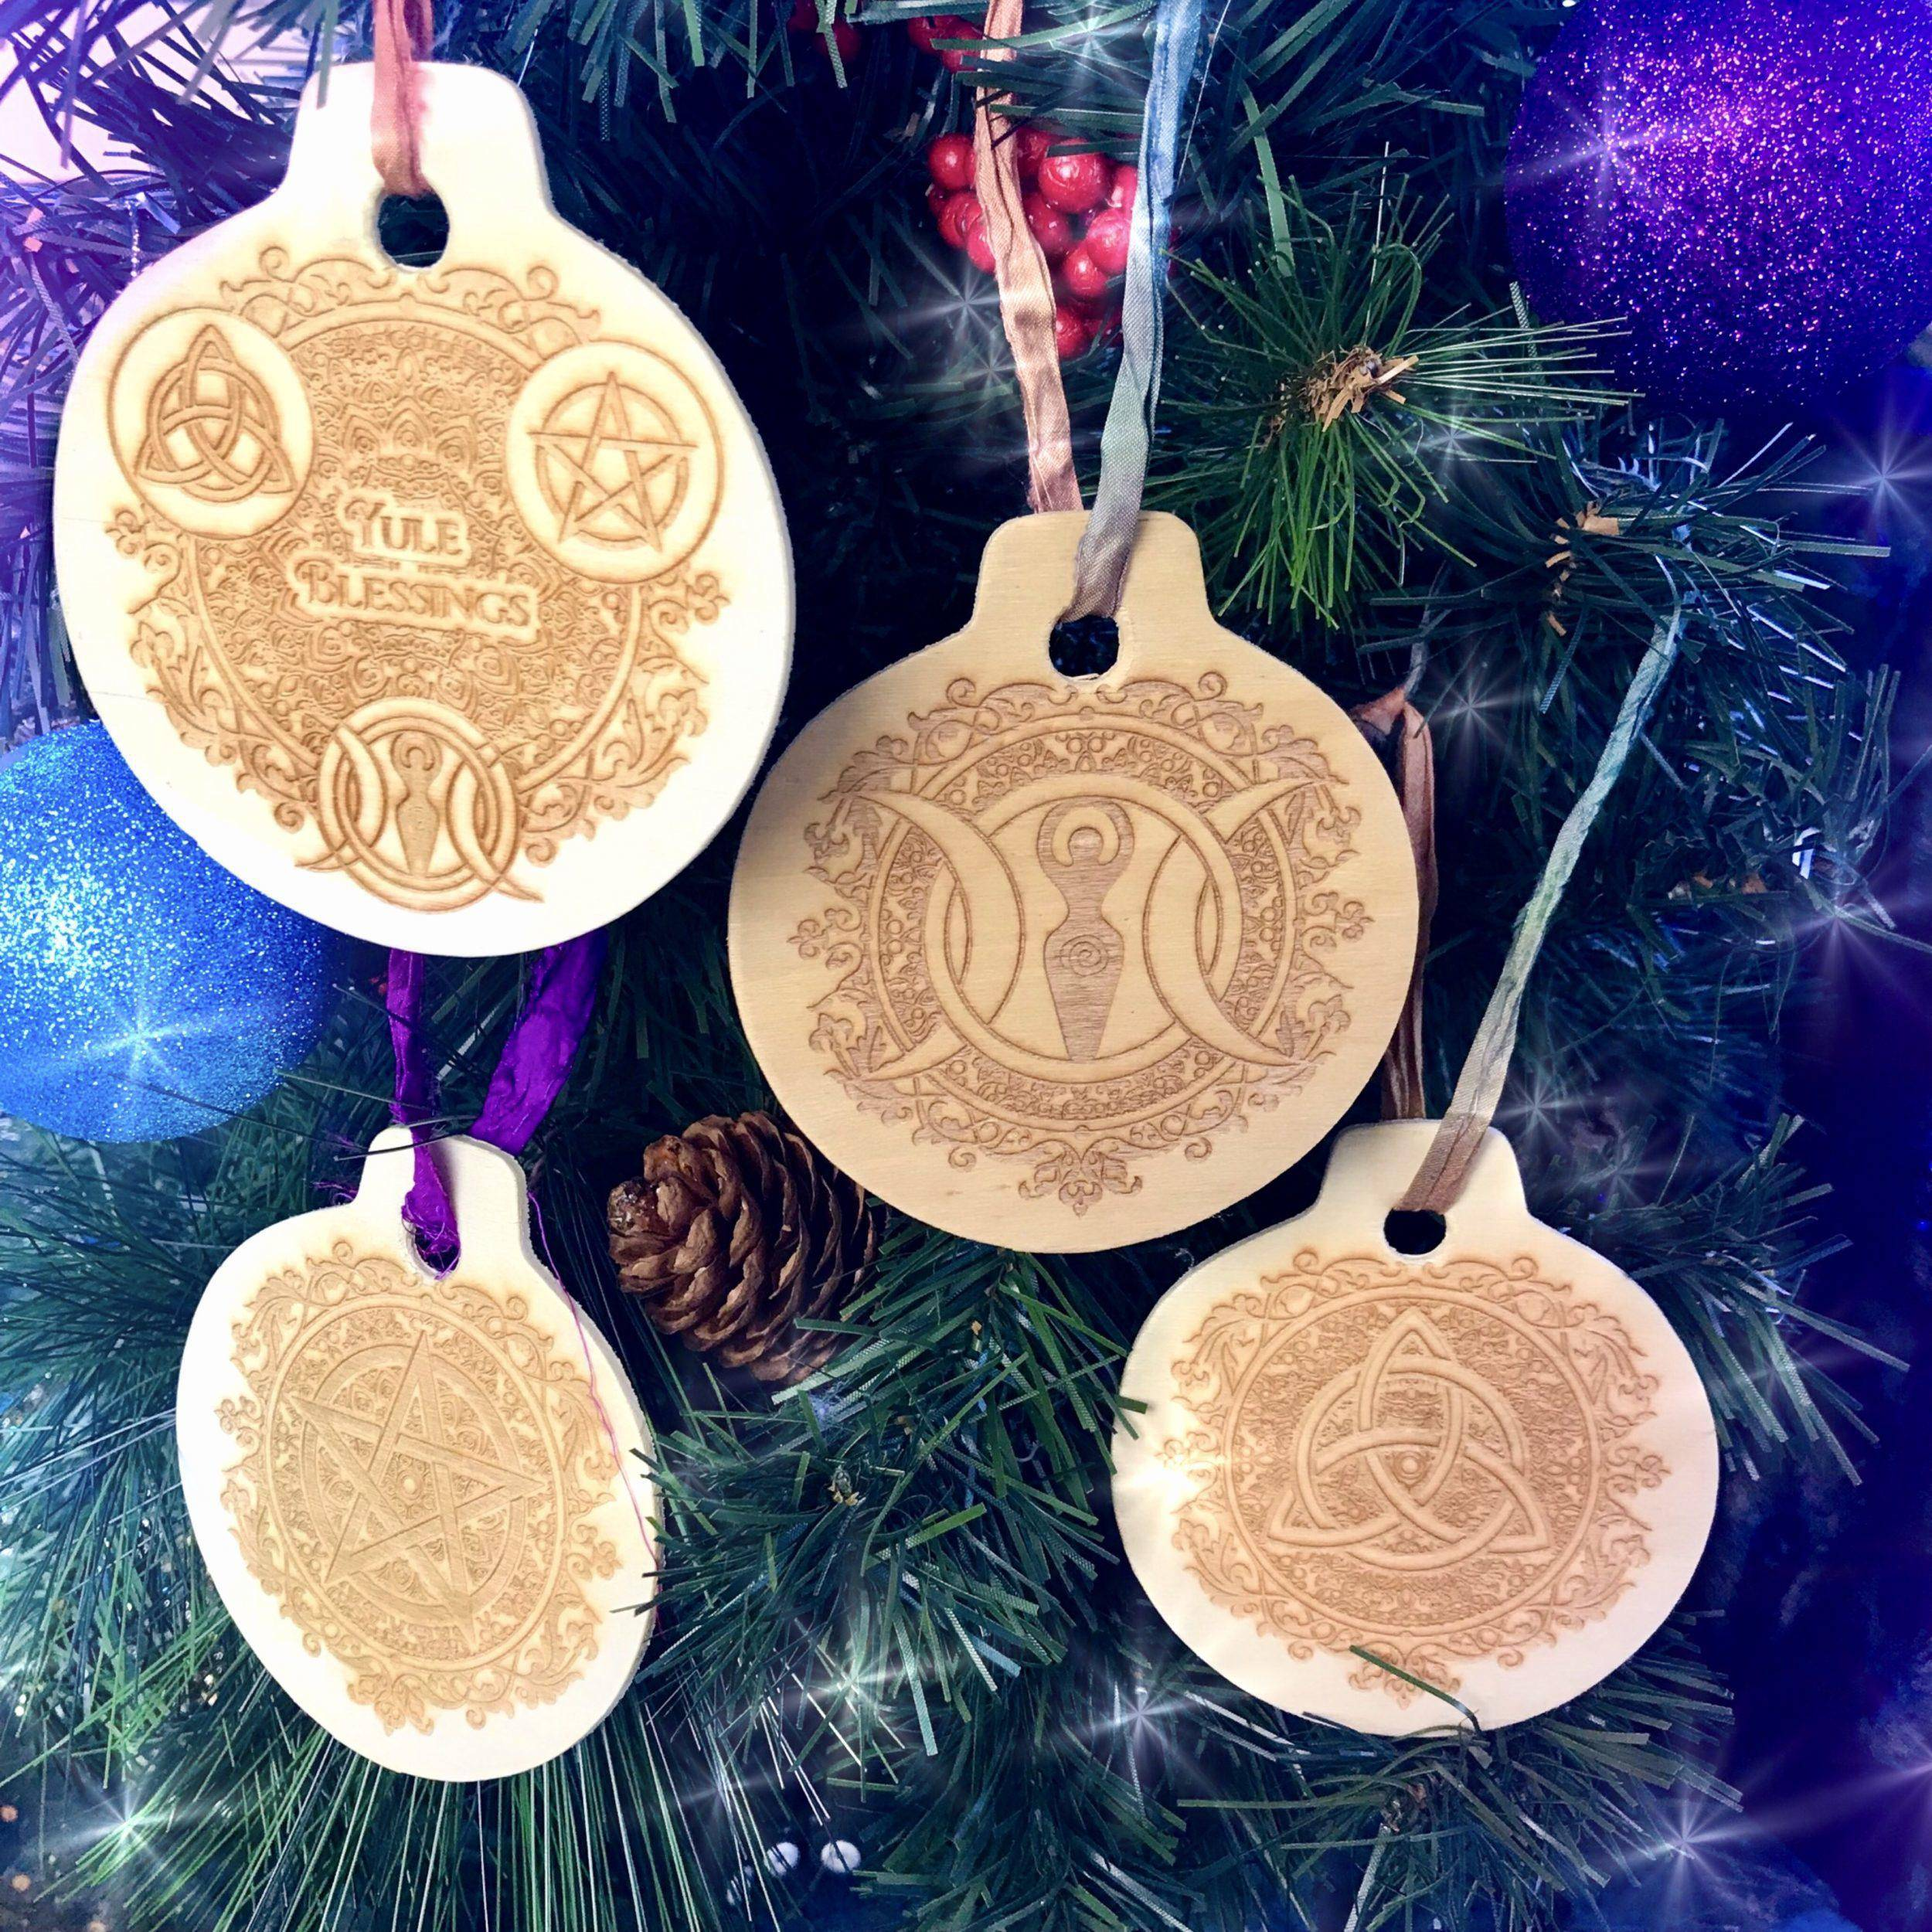 Blessed_Yule_Ornaments_1of5_11_10